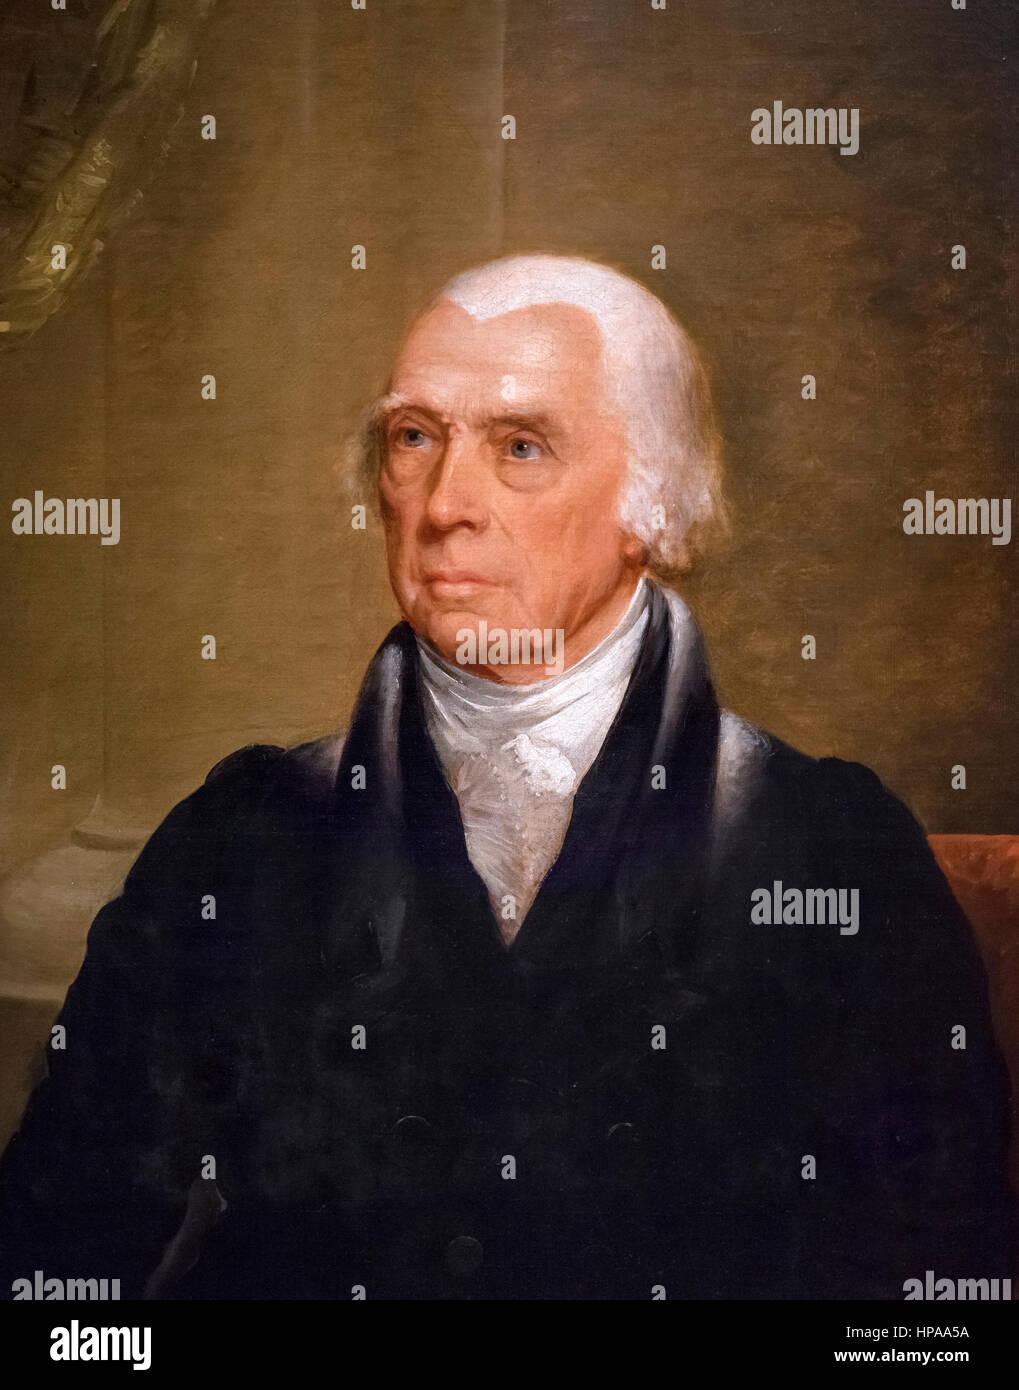 James Madison. Portrait of the 4th US President, James Madison (1751-1836) by Chester Harding, oil on canvas, c.1829 - Stock Image